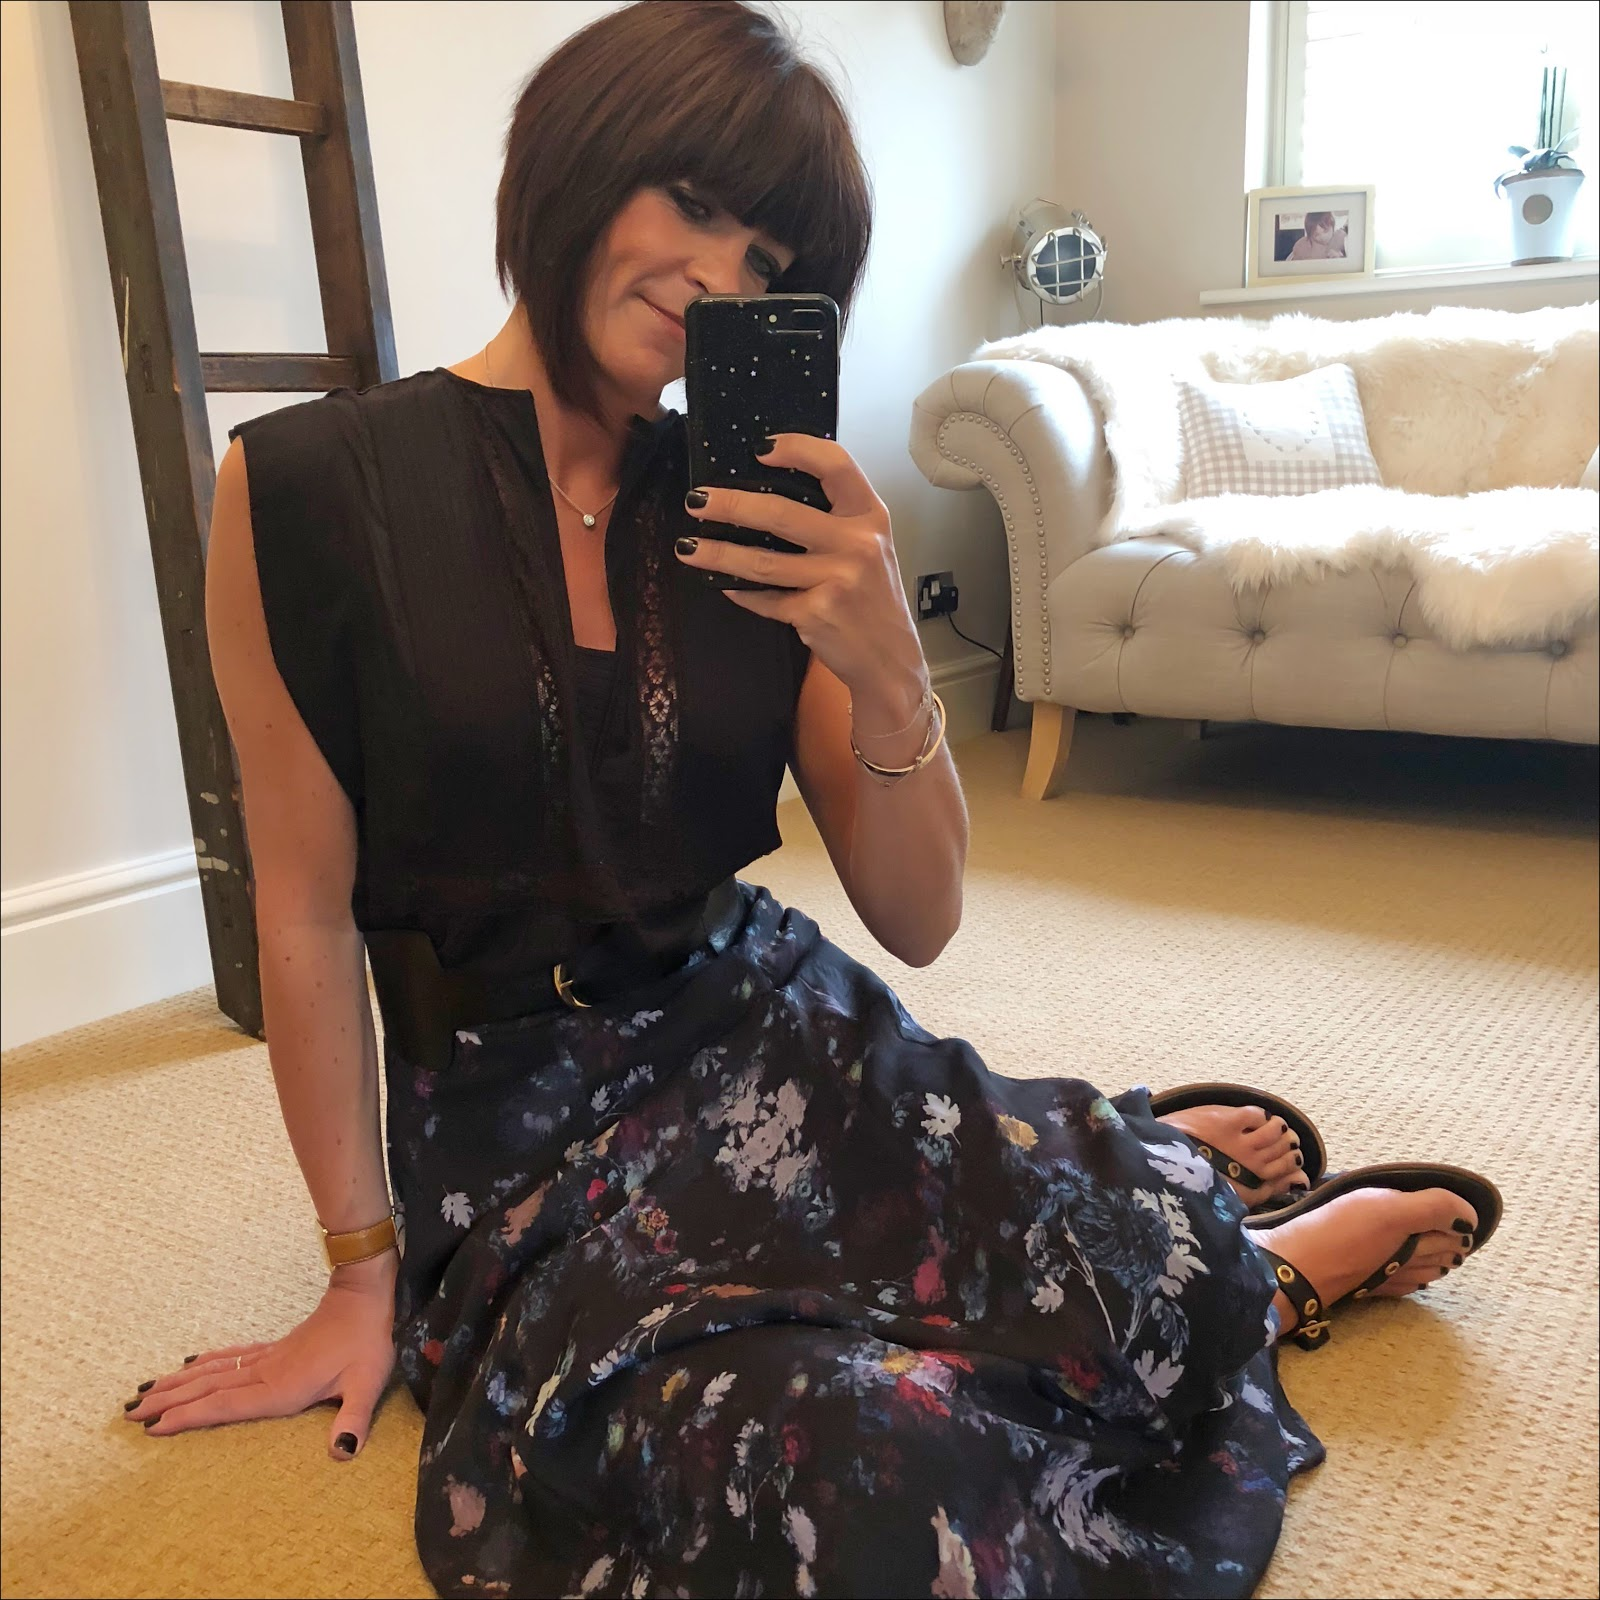 my midlife fashion, isabel marant etoile voile top, and other stories waist buckle belt, lily and lionel floral maxi skirt, iro paris eyelet leather sandals